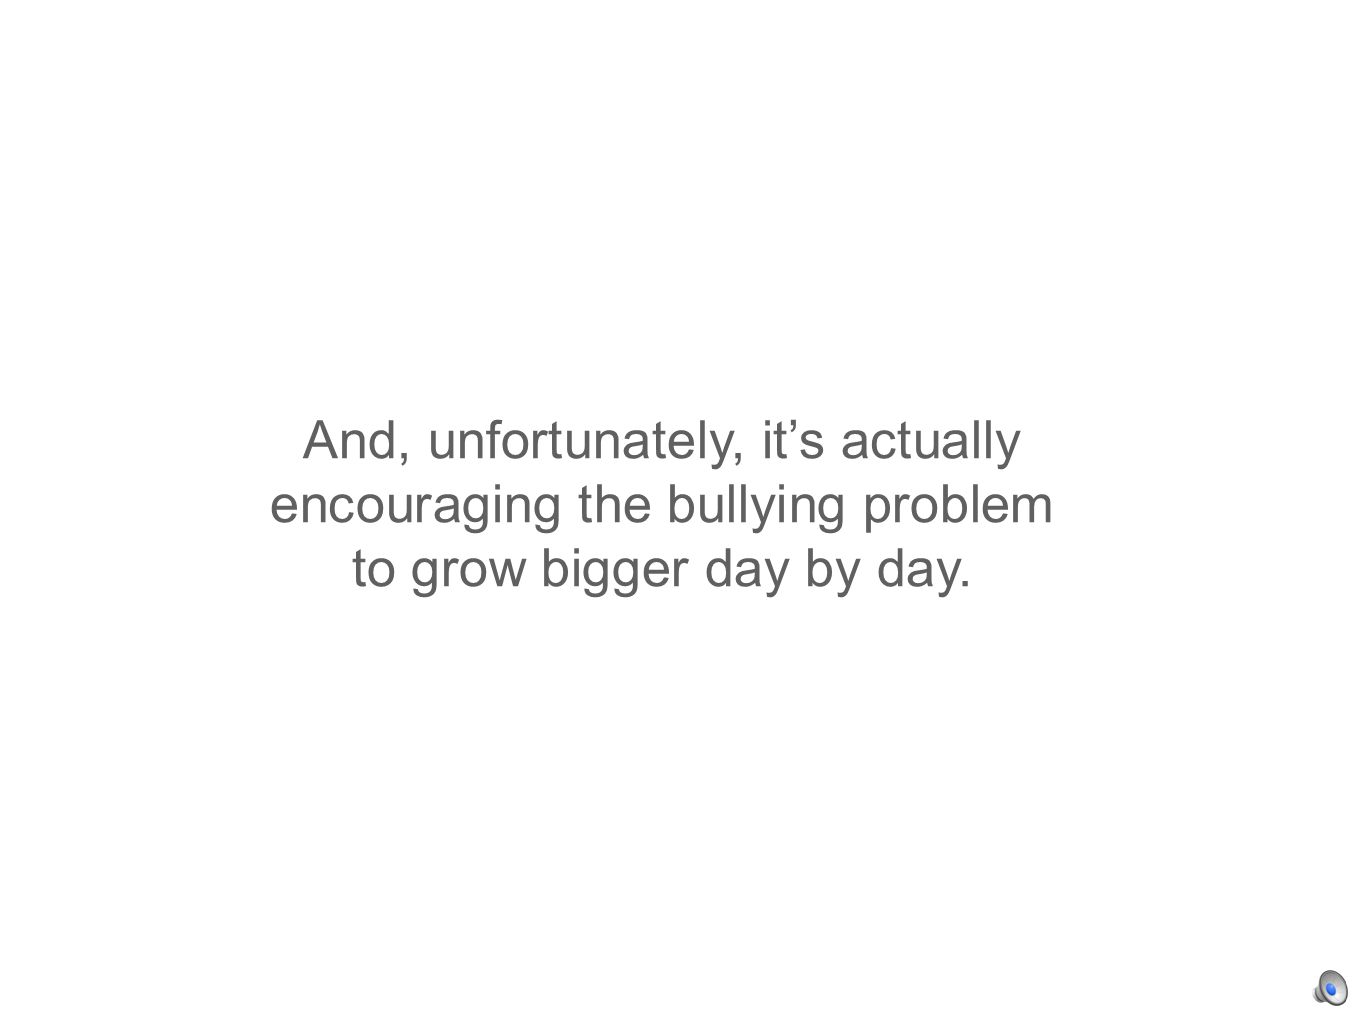 And, unfortunately, its actually encouraging the bullying problem to grow bigger day by day.